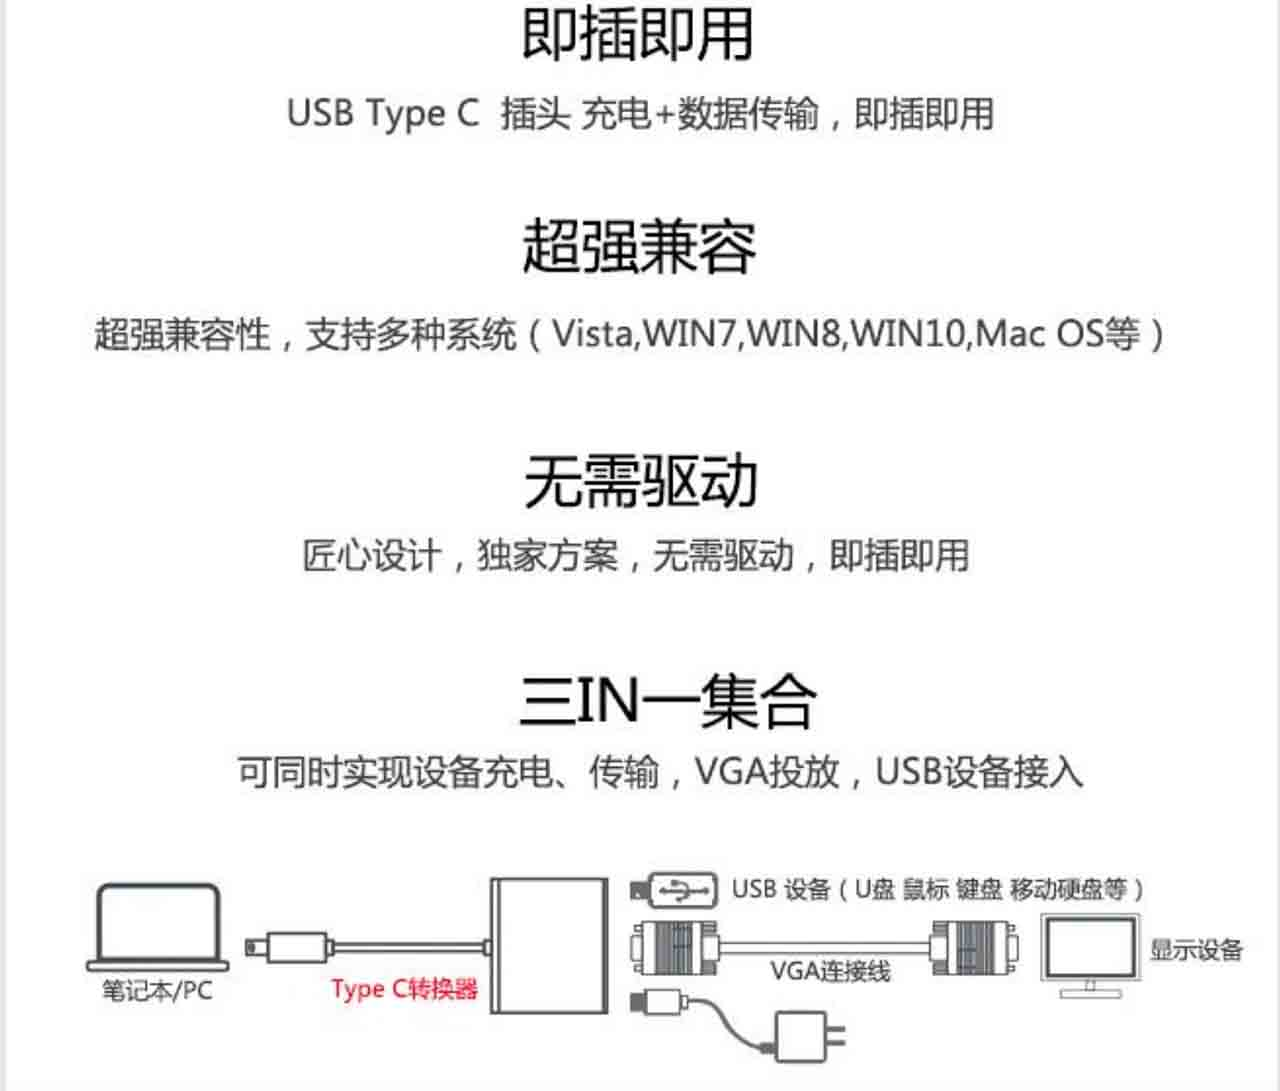 亚马逊倍思Type c转USB转接头USBC转VGA拓展坞转换器USB3.1雷电AmazonBasics USB 3.1 Type-C VGA Multiport Adapter